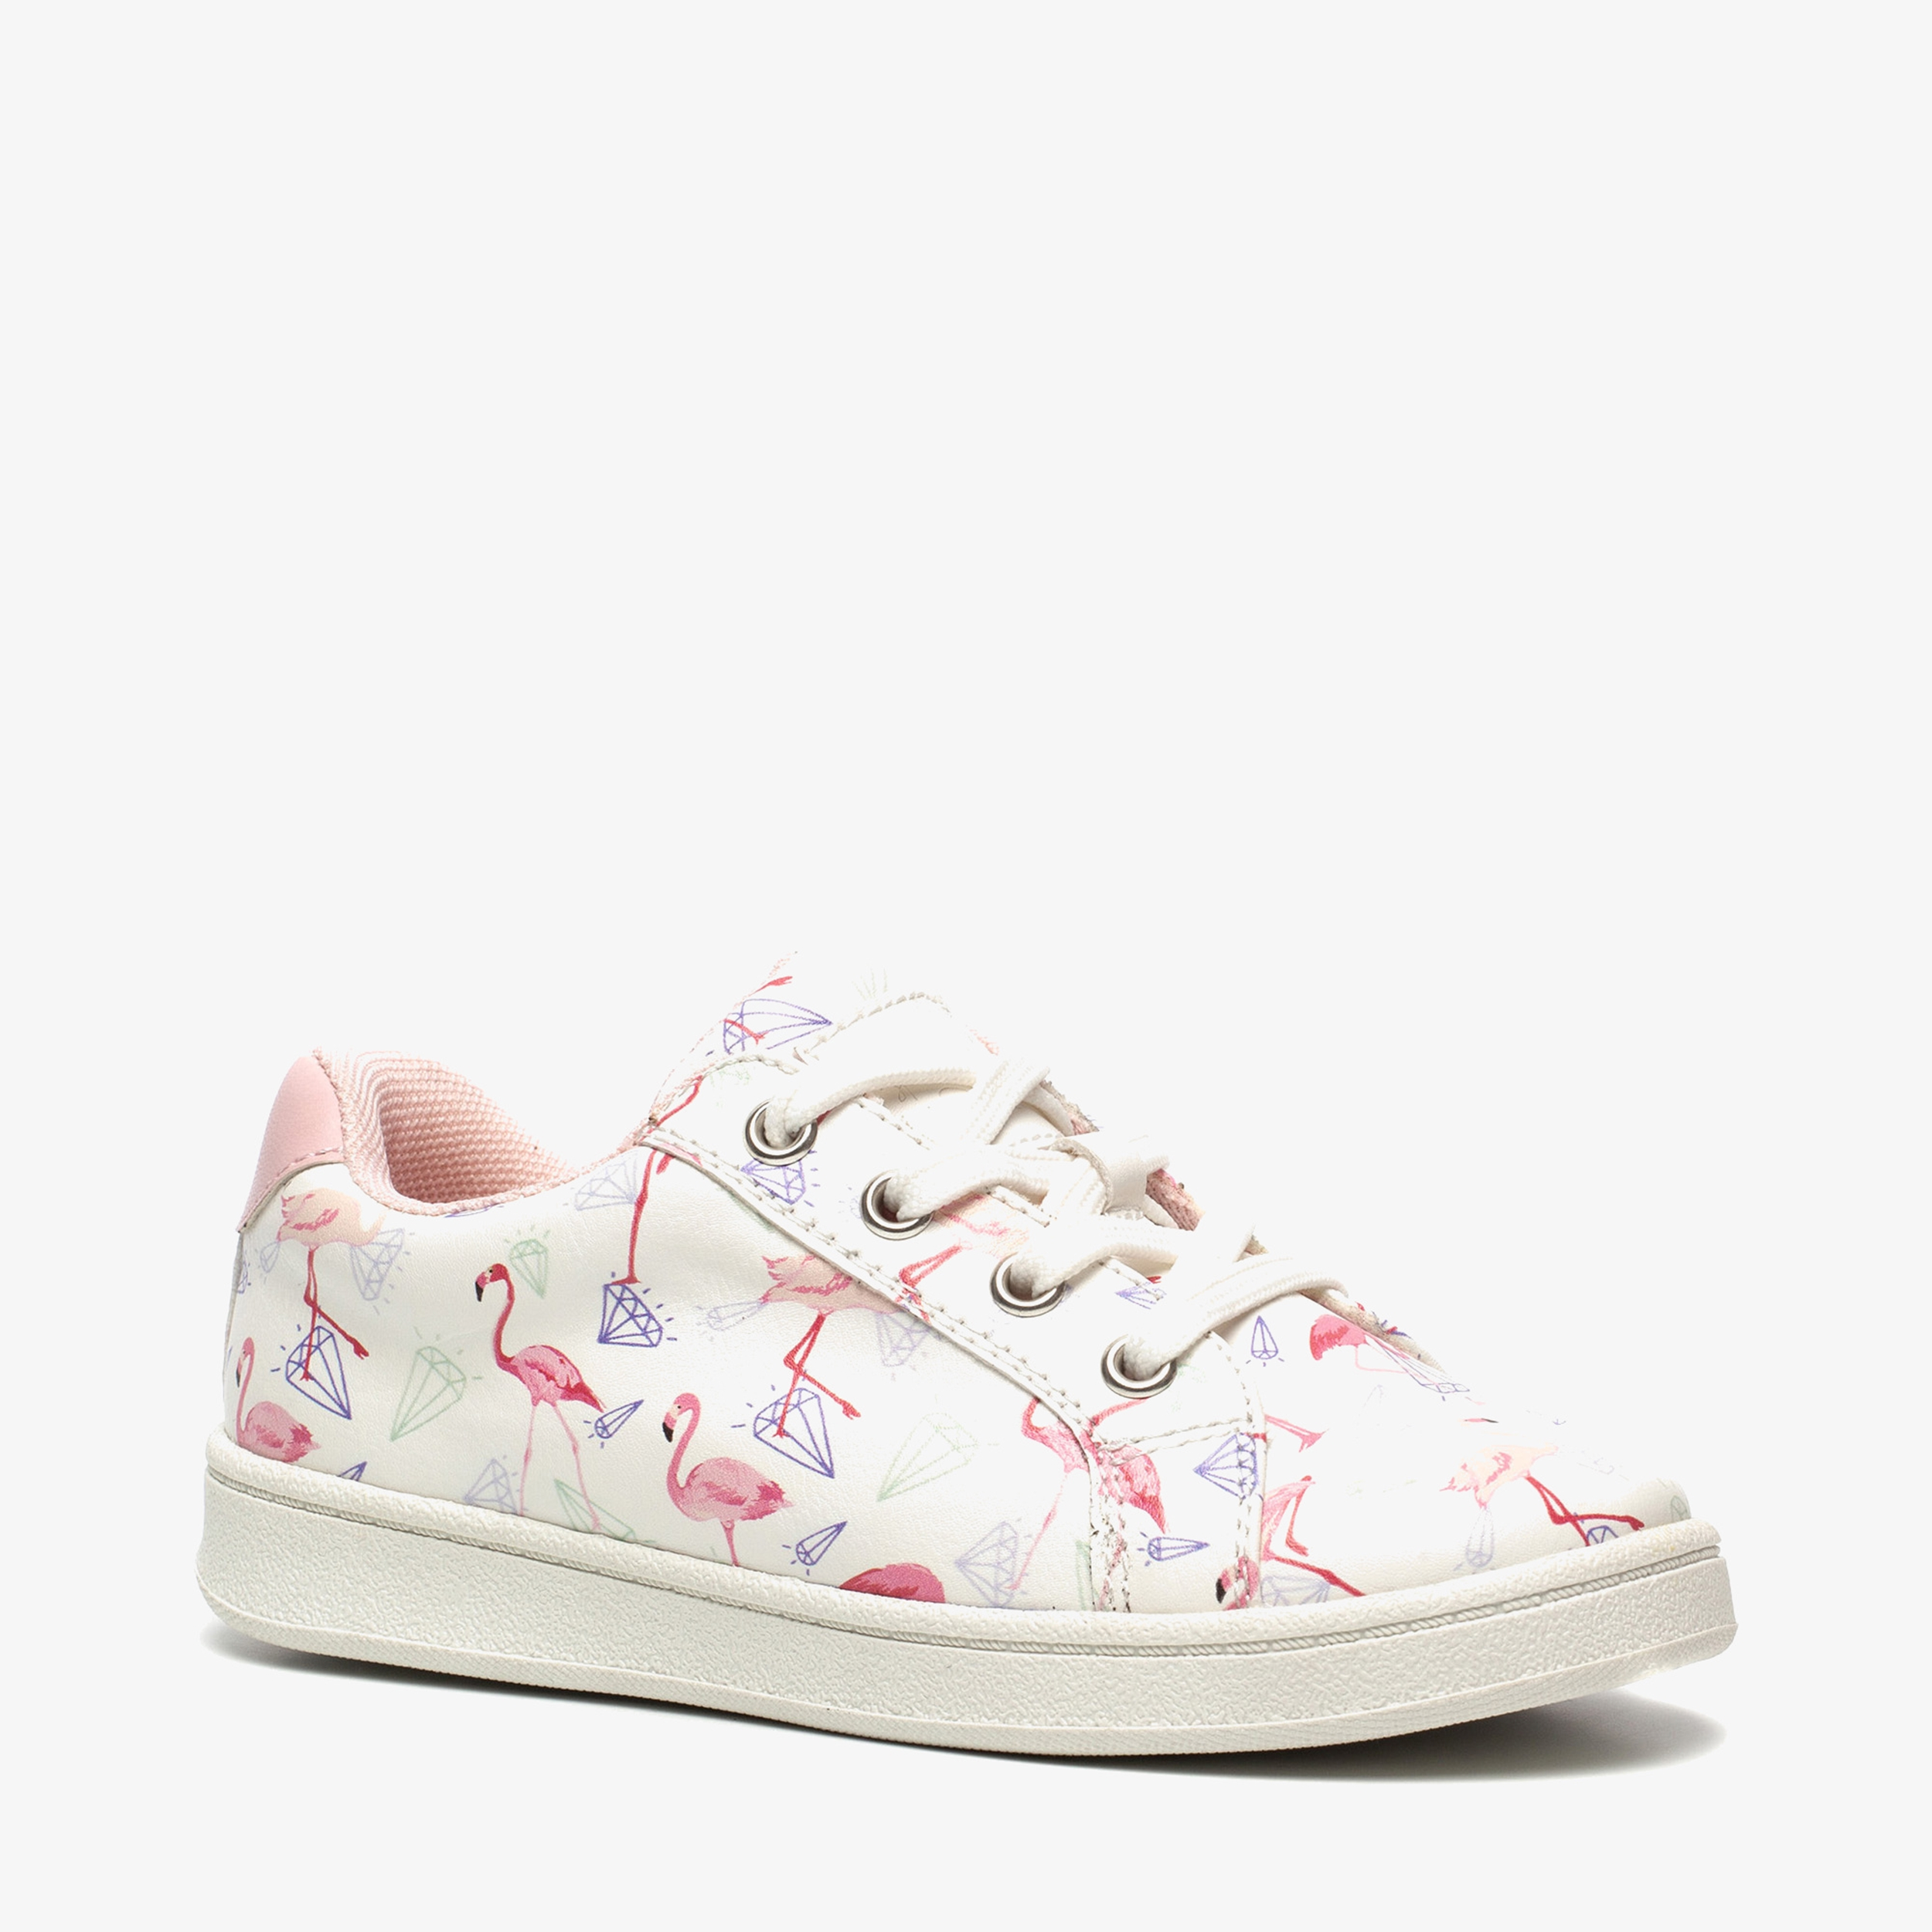 Blue Box meisjes flamingo sneakers | Scapino.nl